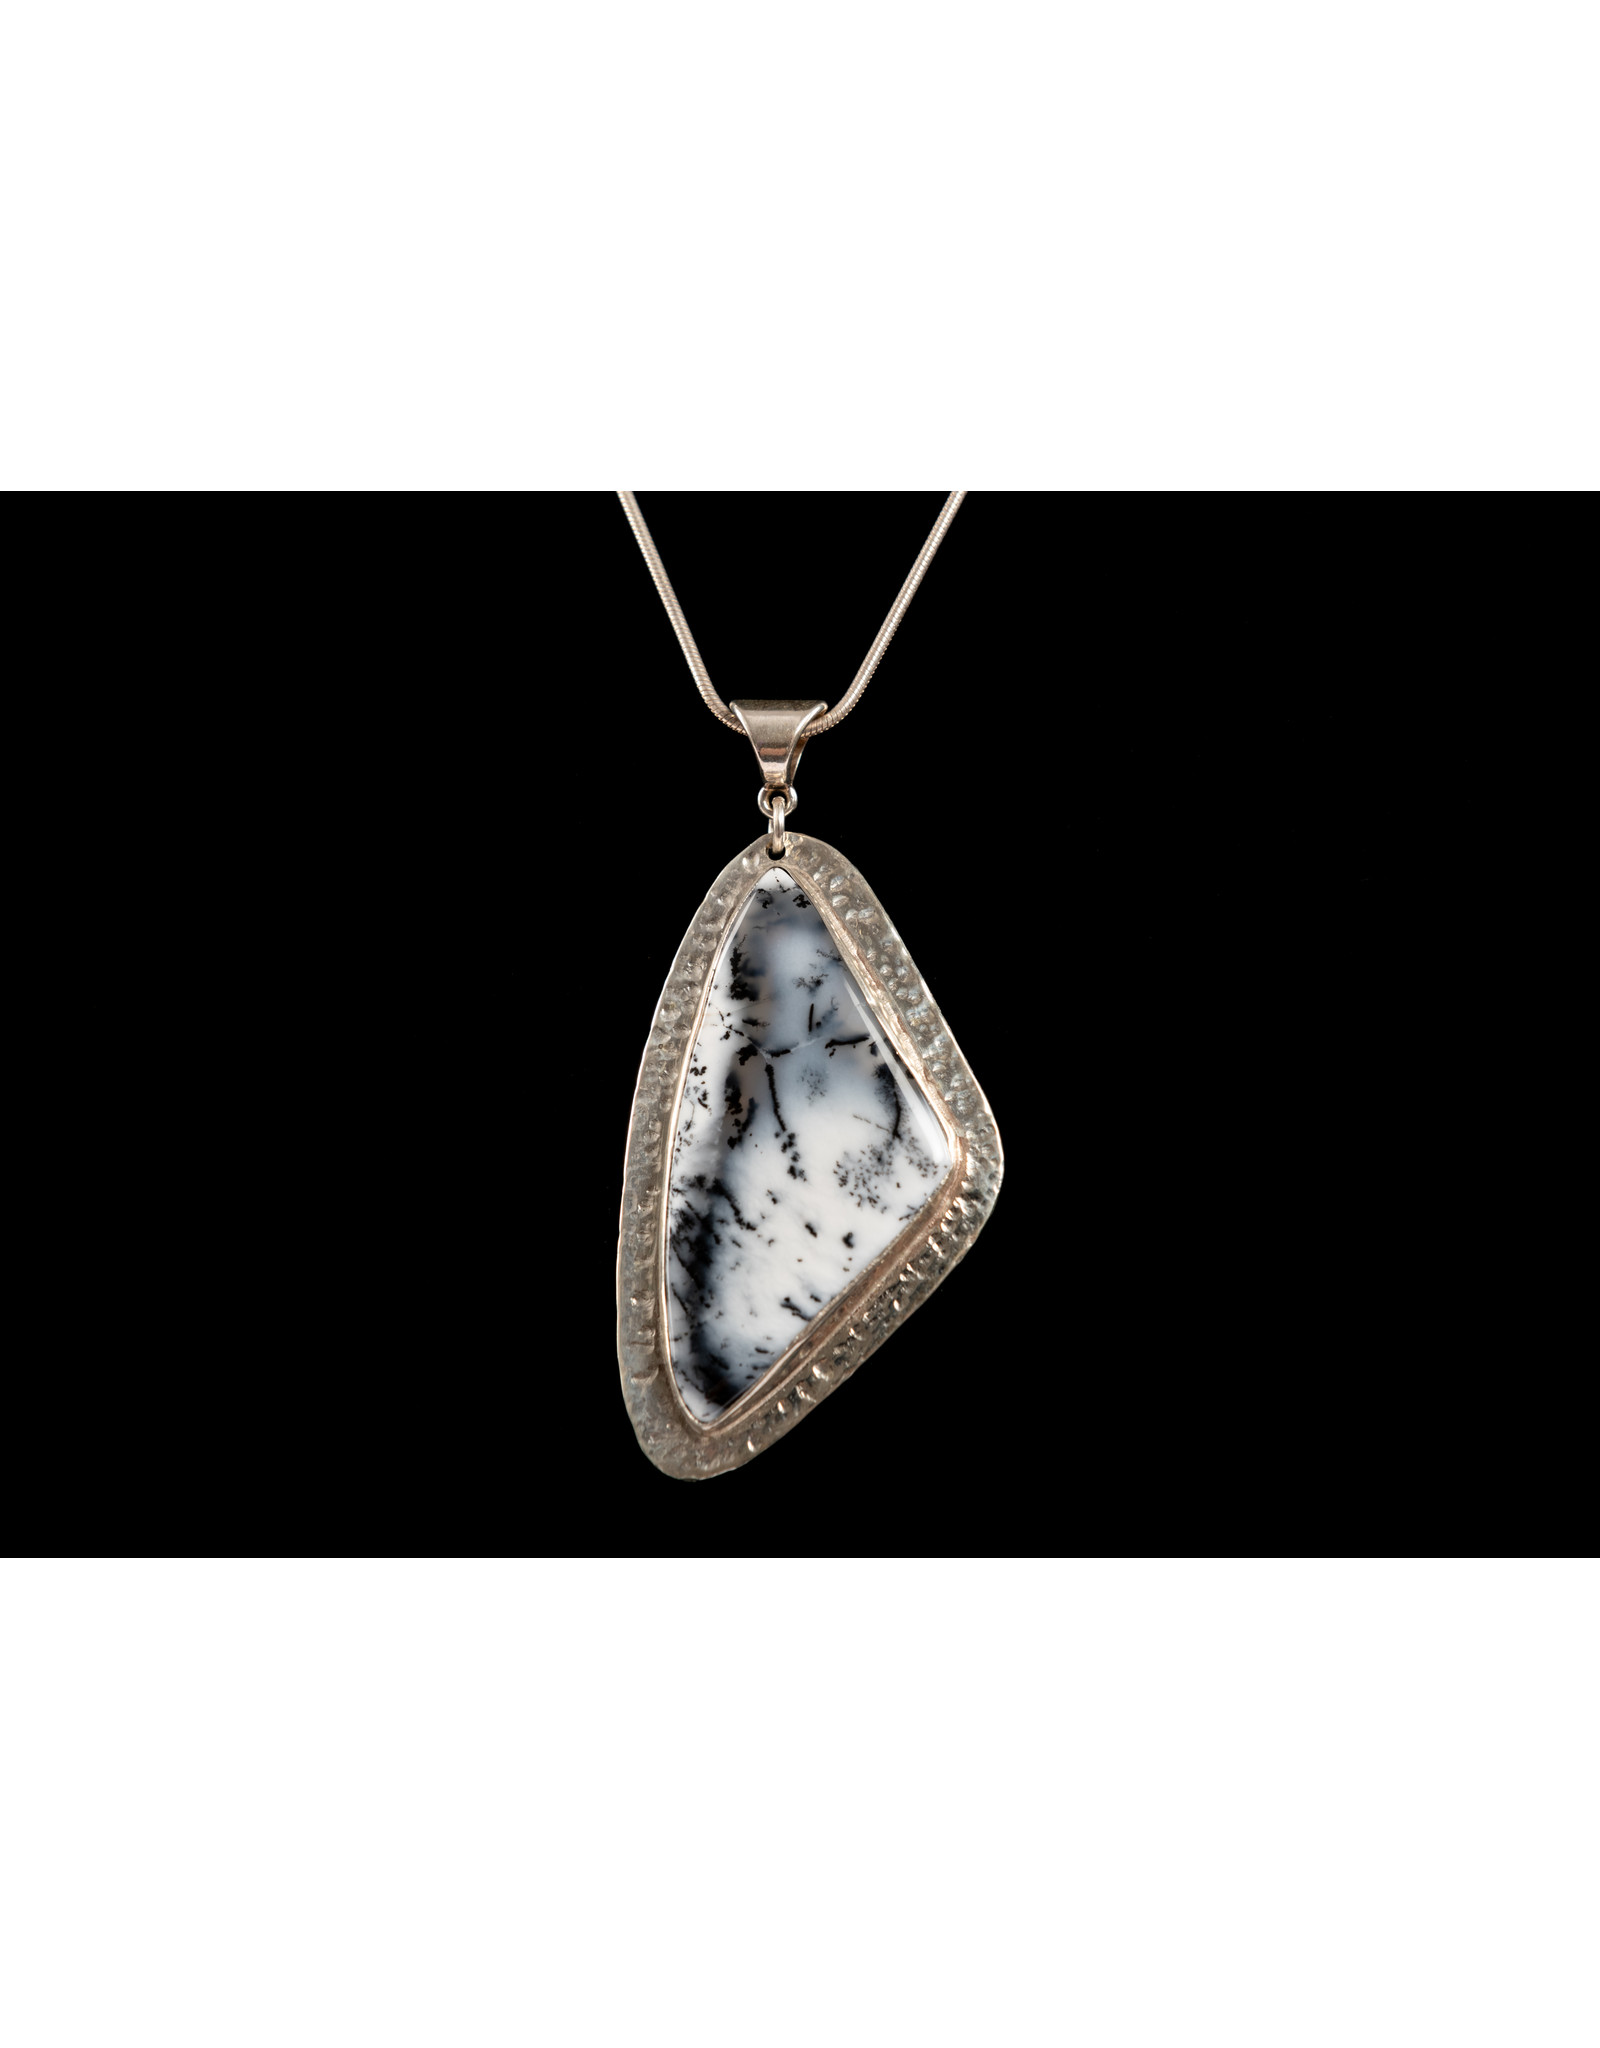 Jim & Judy MacLean Dendrite Pendant by Findings for Friends